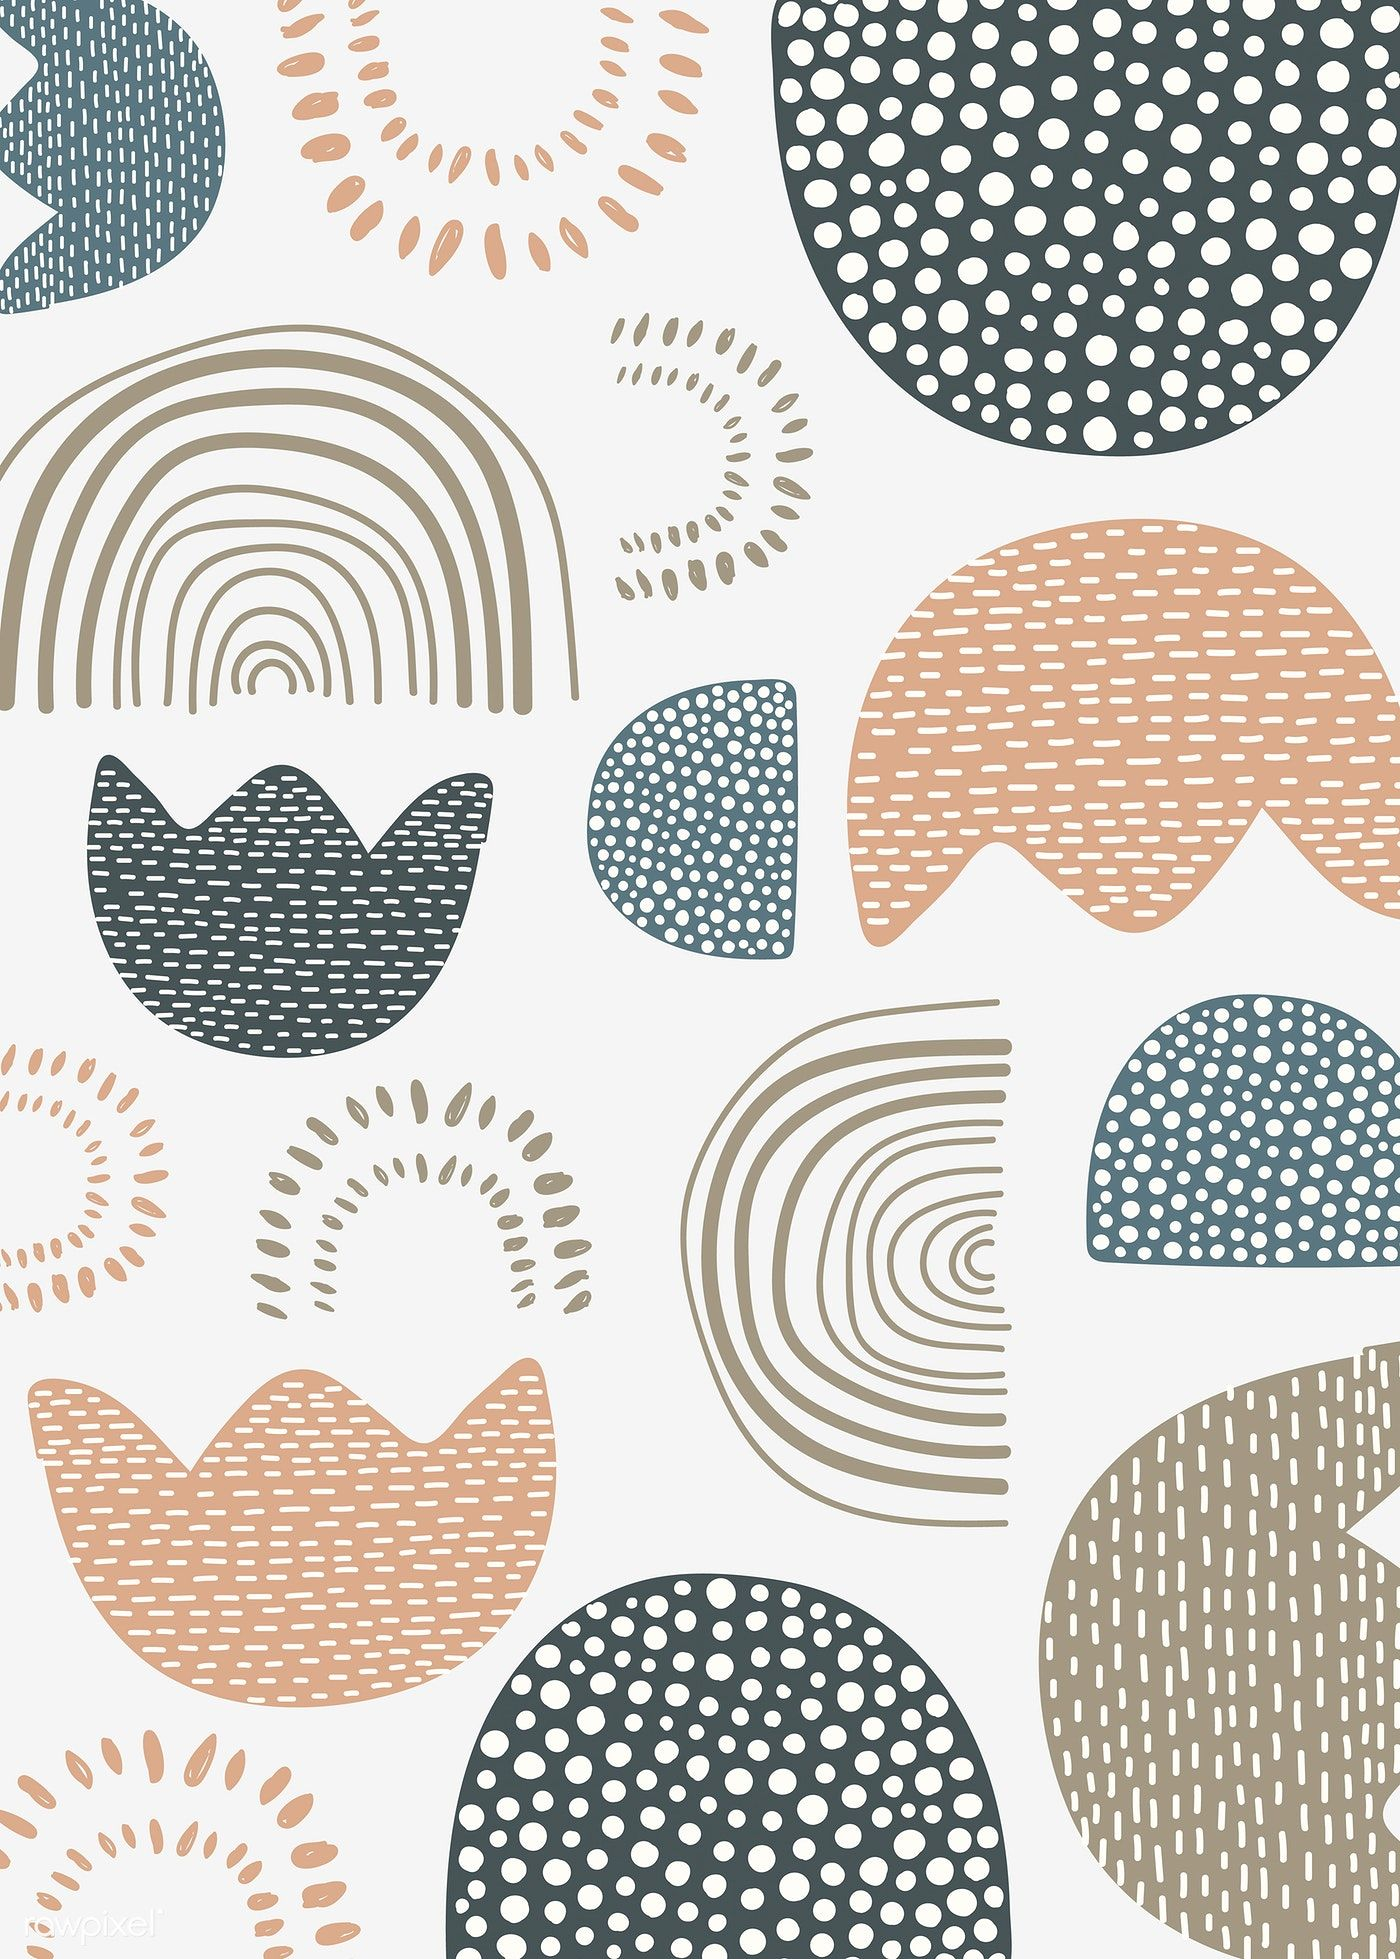 Download premium vector of Natural patterned doodle background vector #pastelpattern